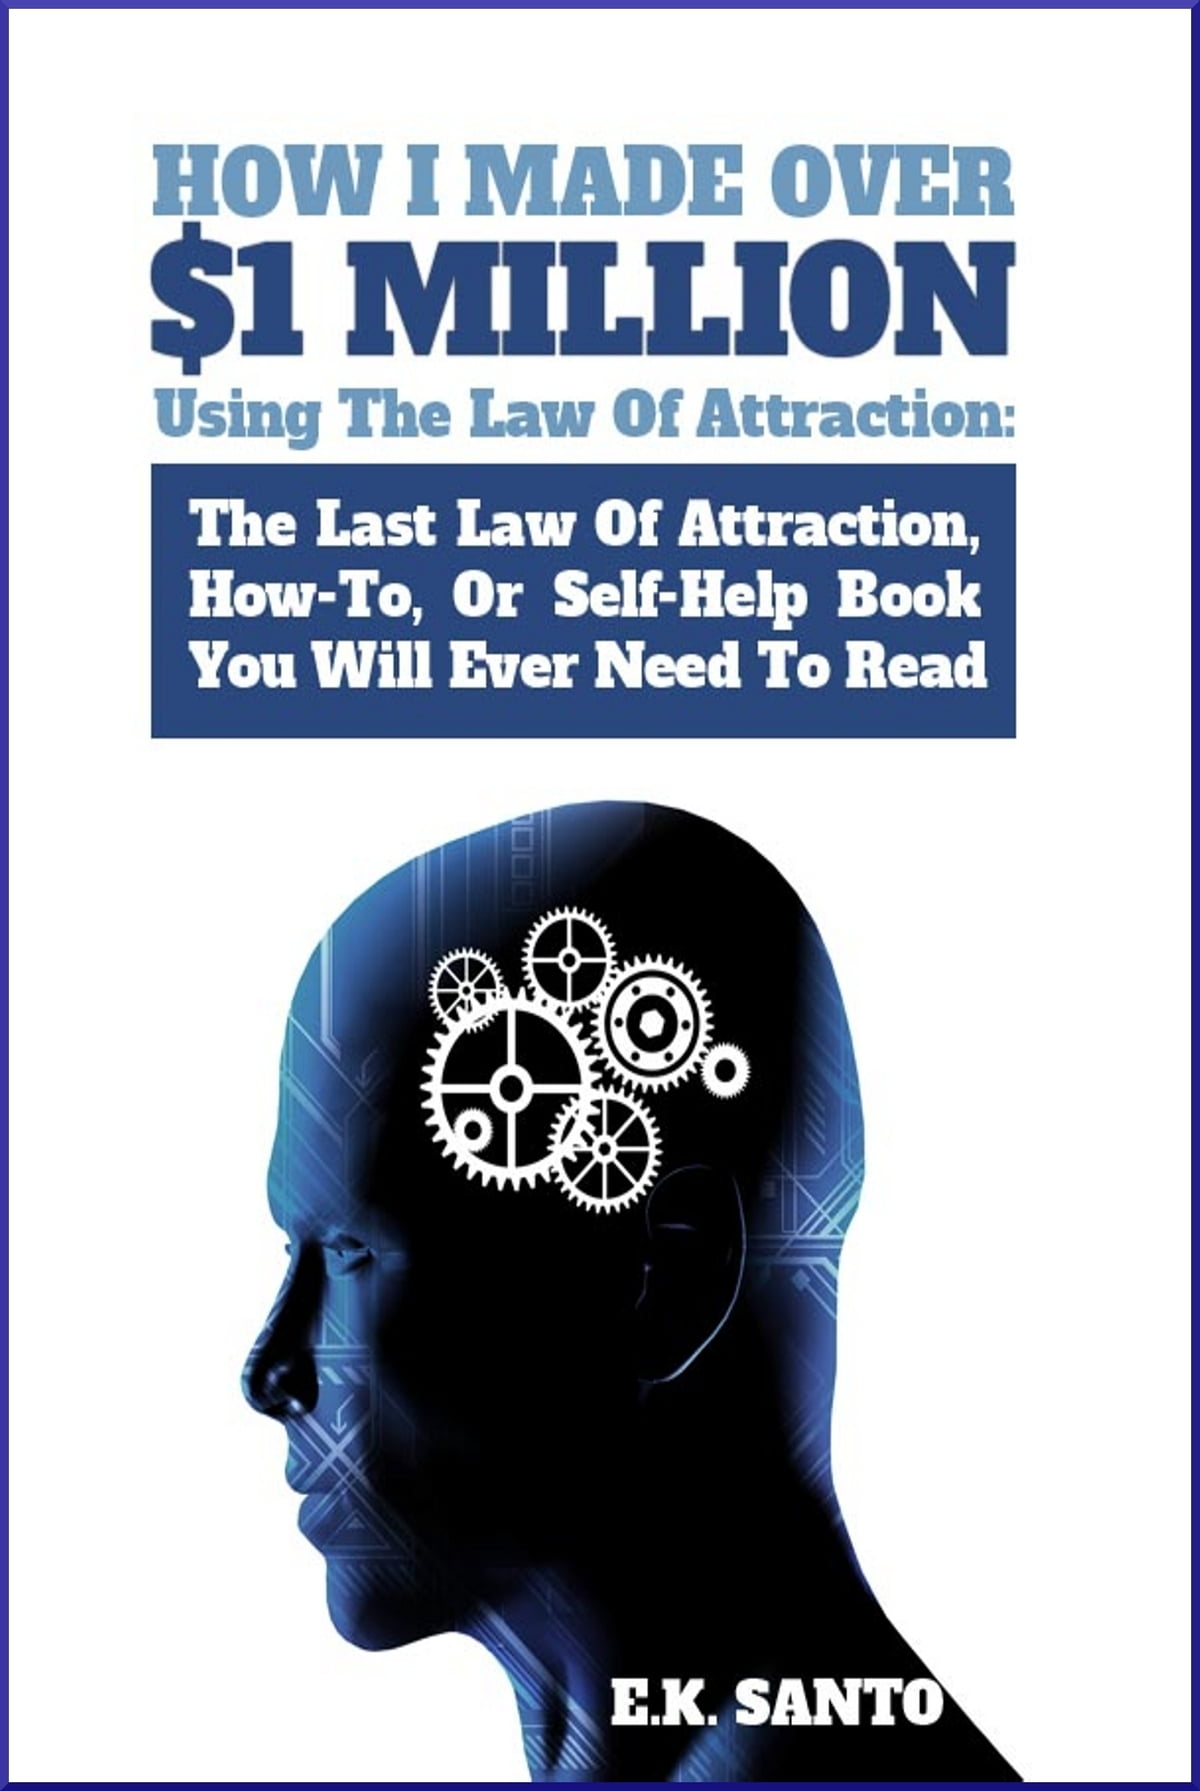 How I Made Over $1 Million Using The Law Of Attraction: The Last Law Of